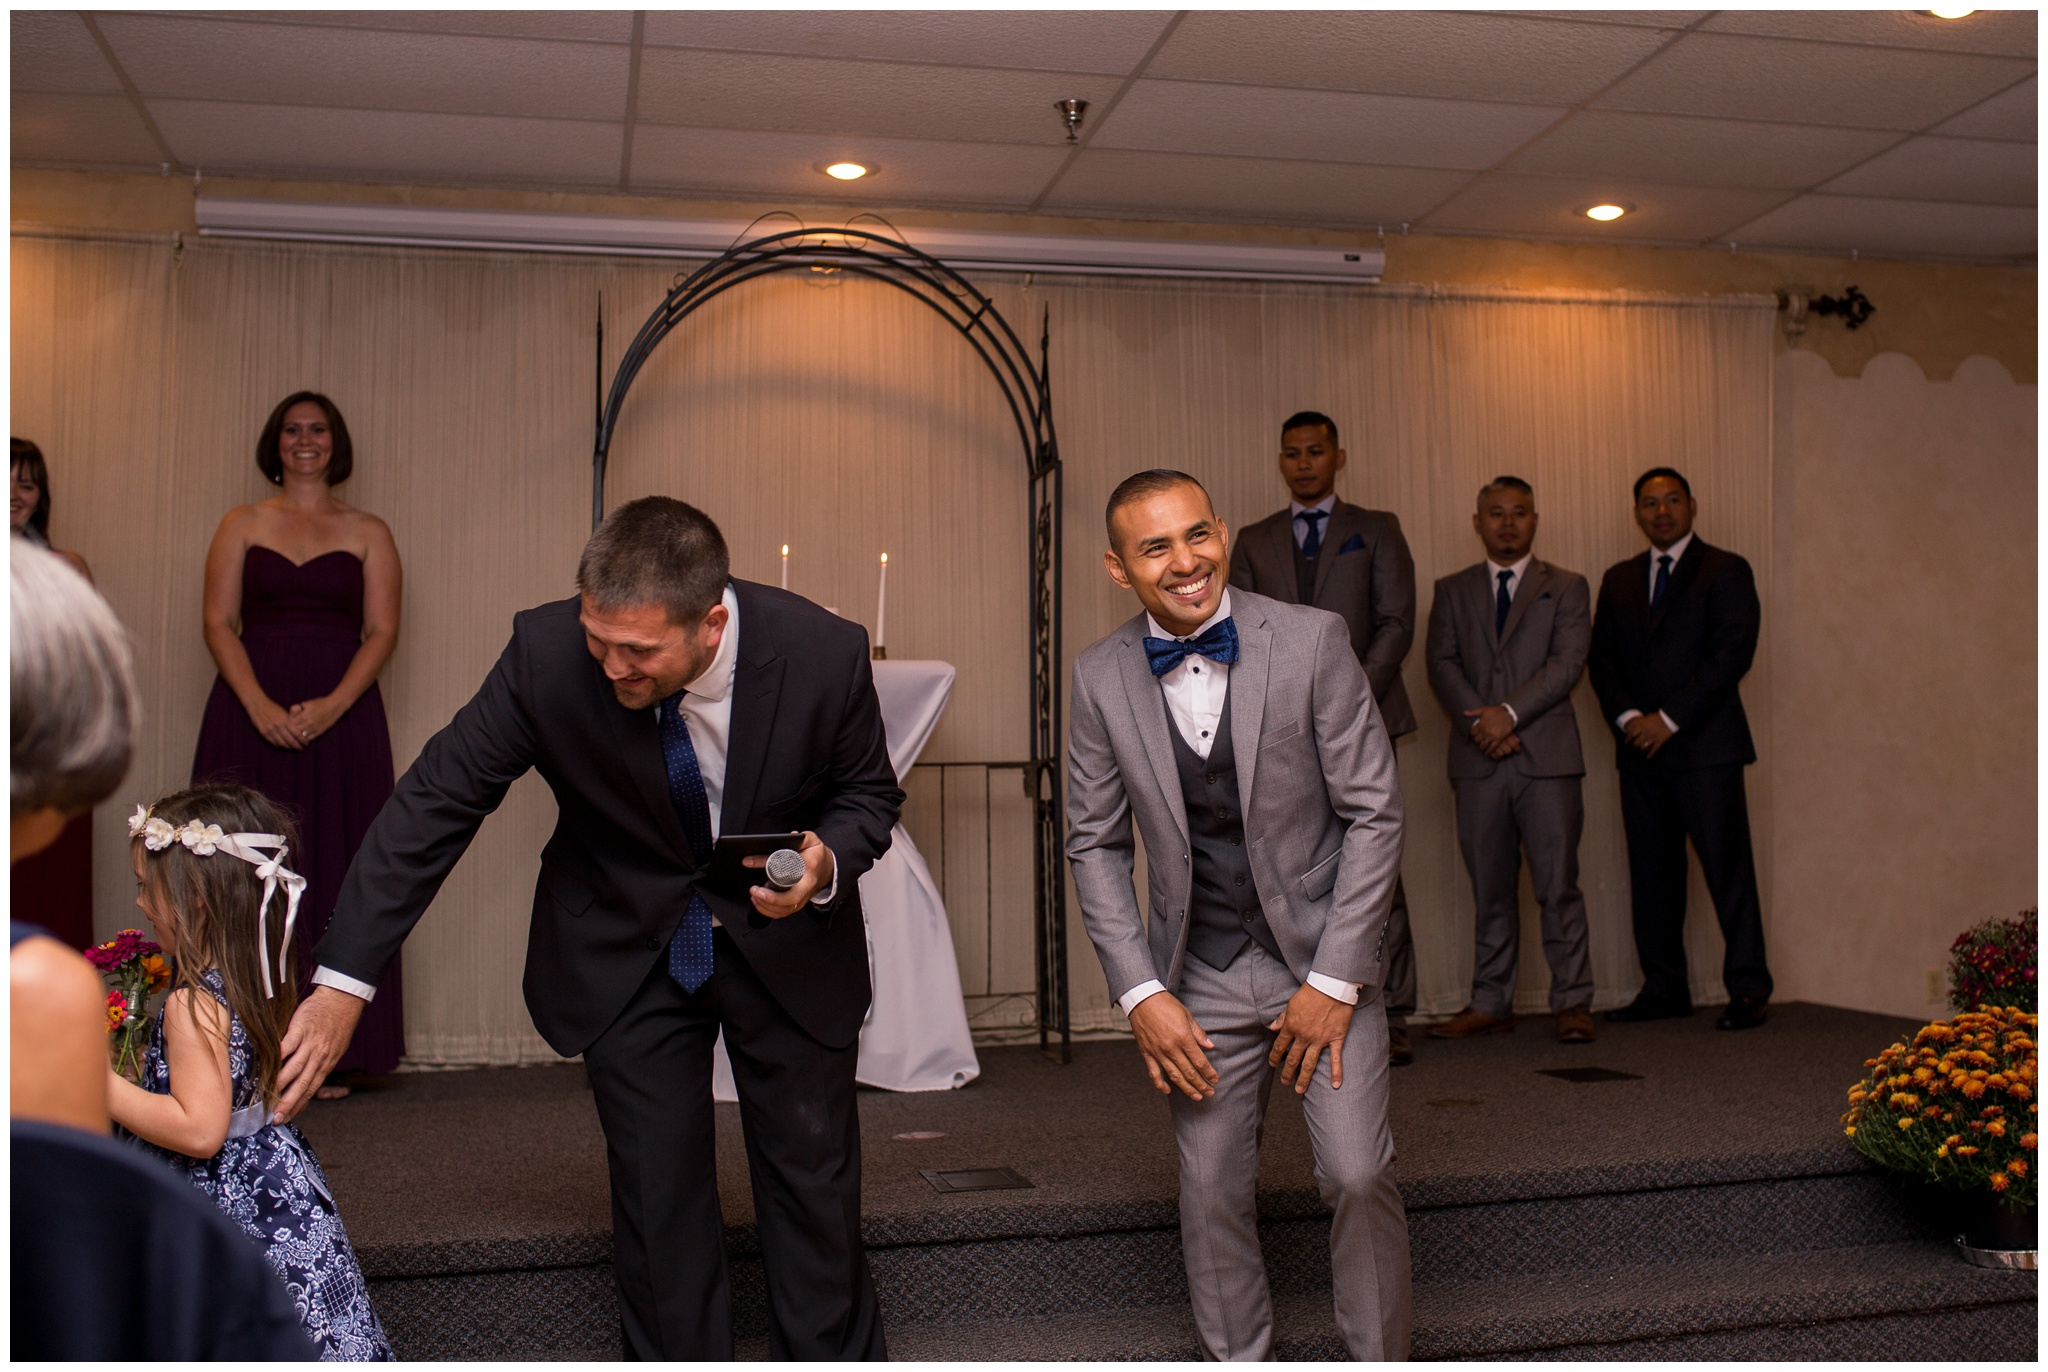 groom laughing during wedding ceremony at Romer's Catering in Greenville Ohio